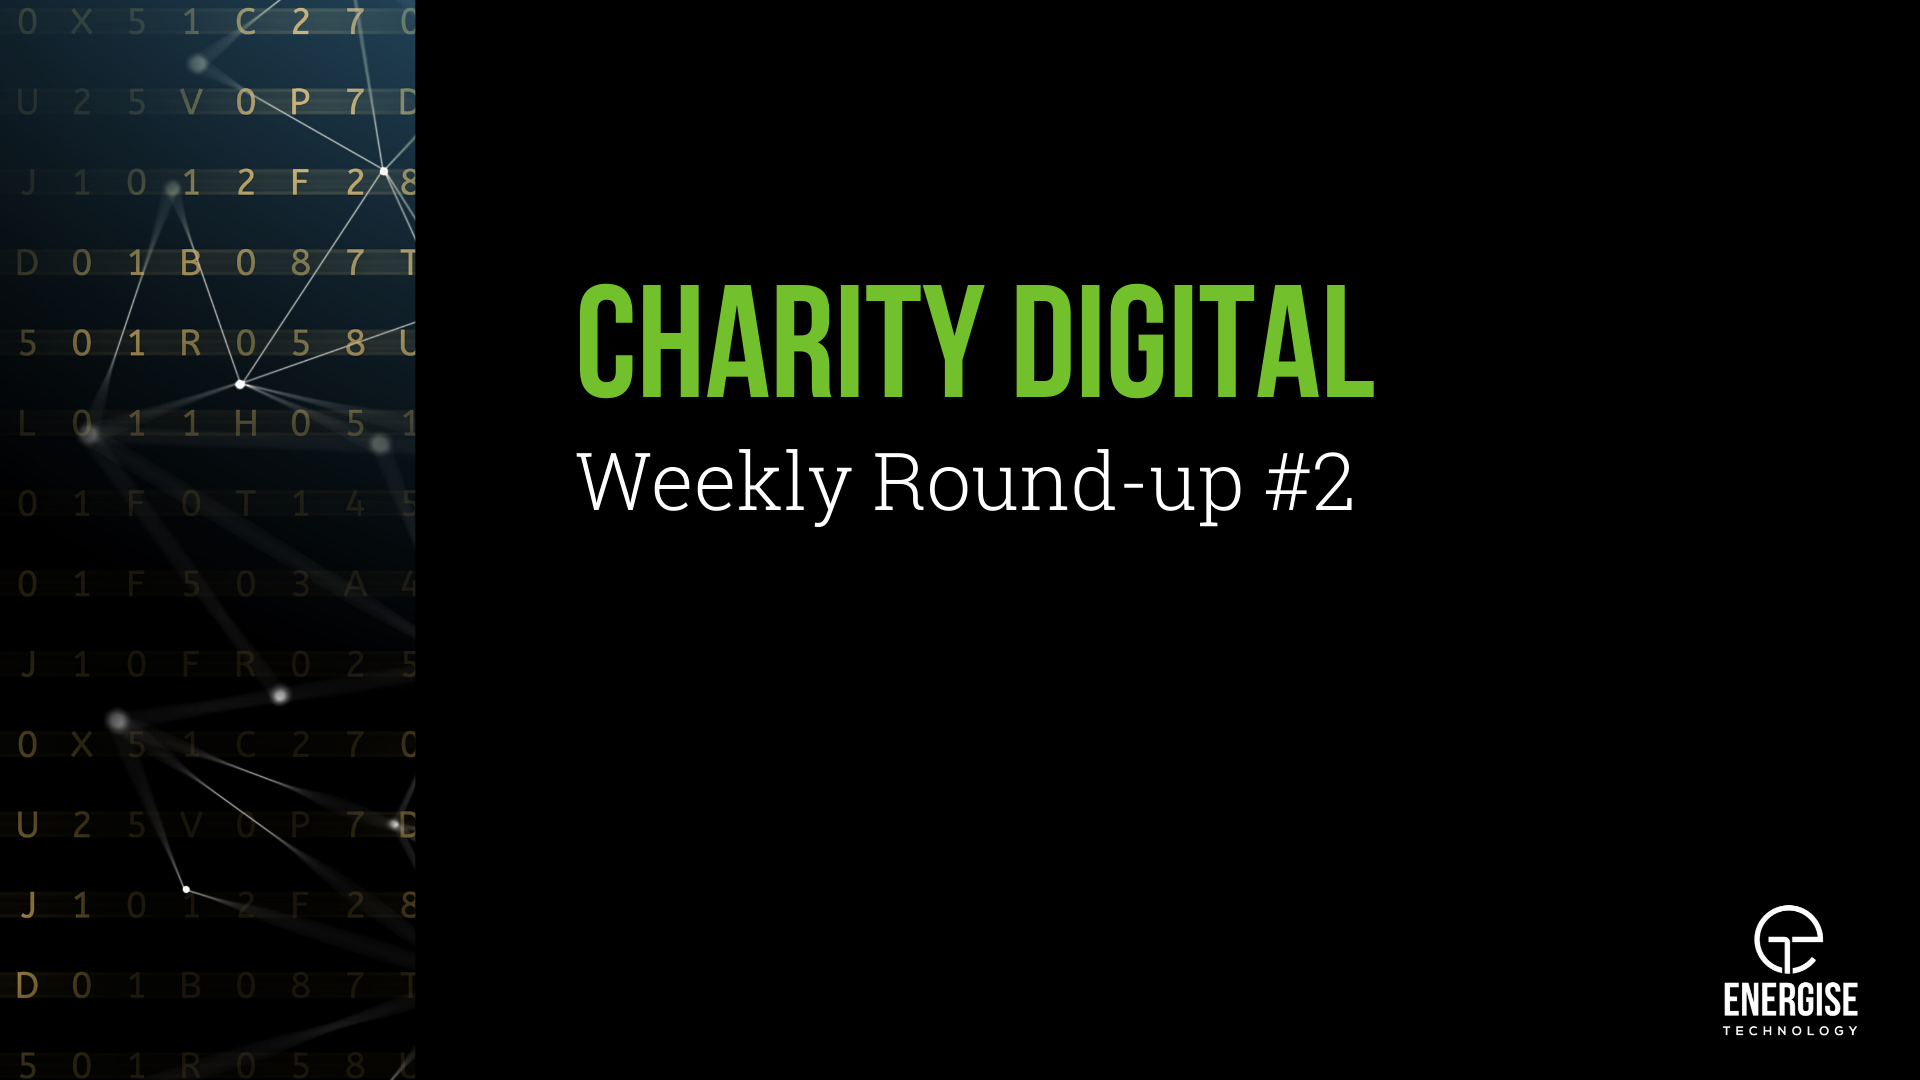 Charity Digital Weekly Roundup #2